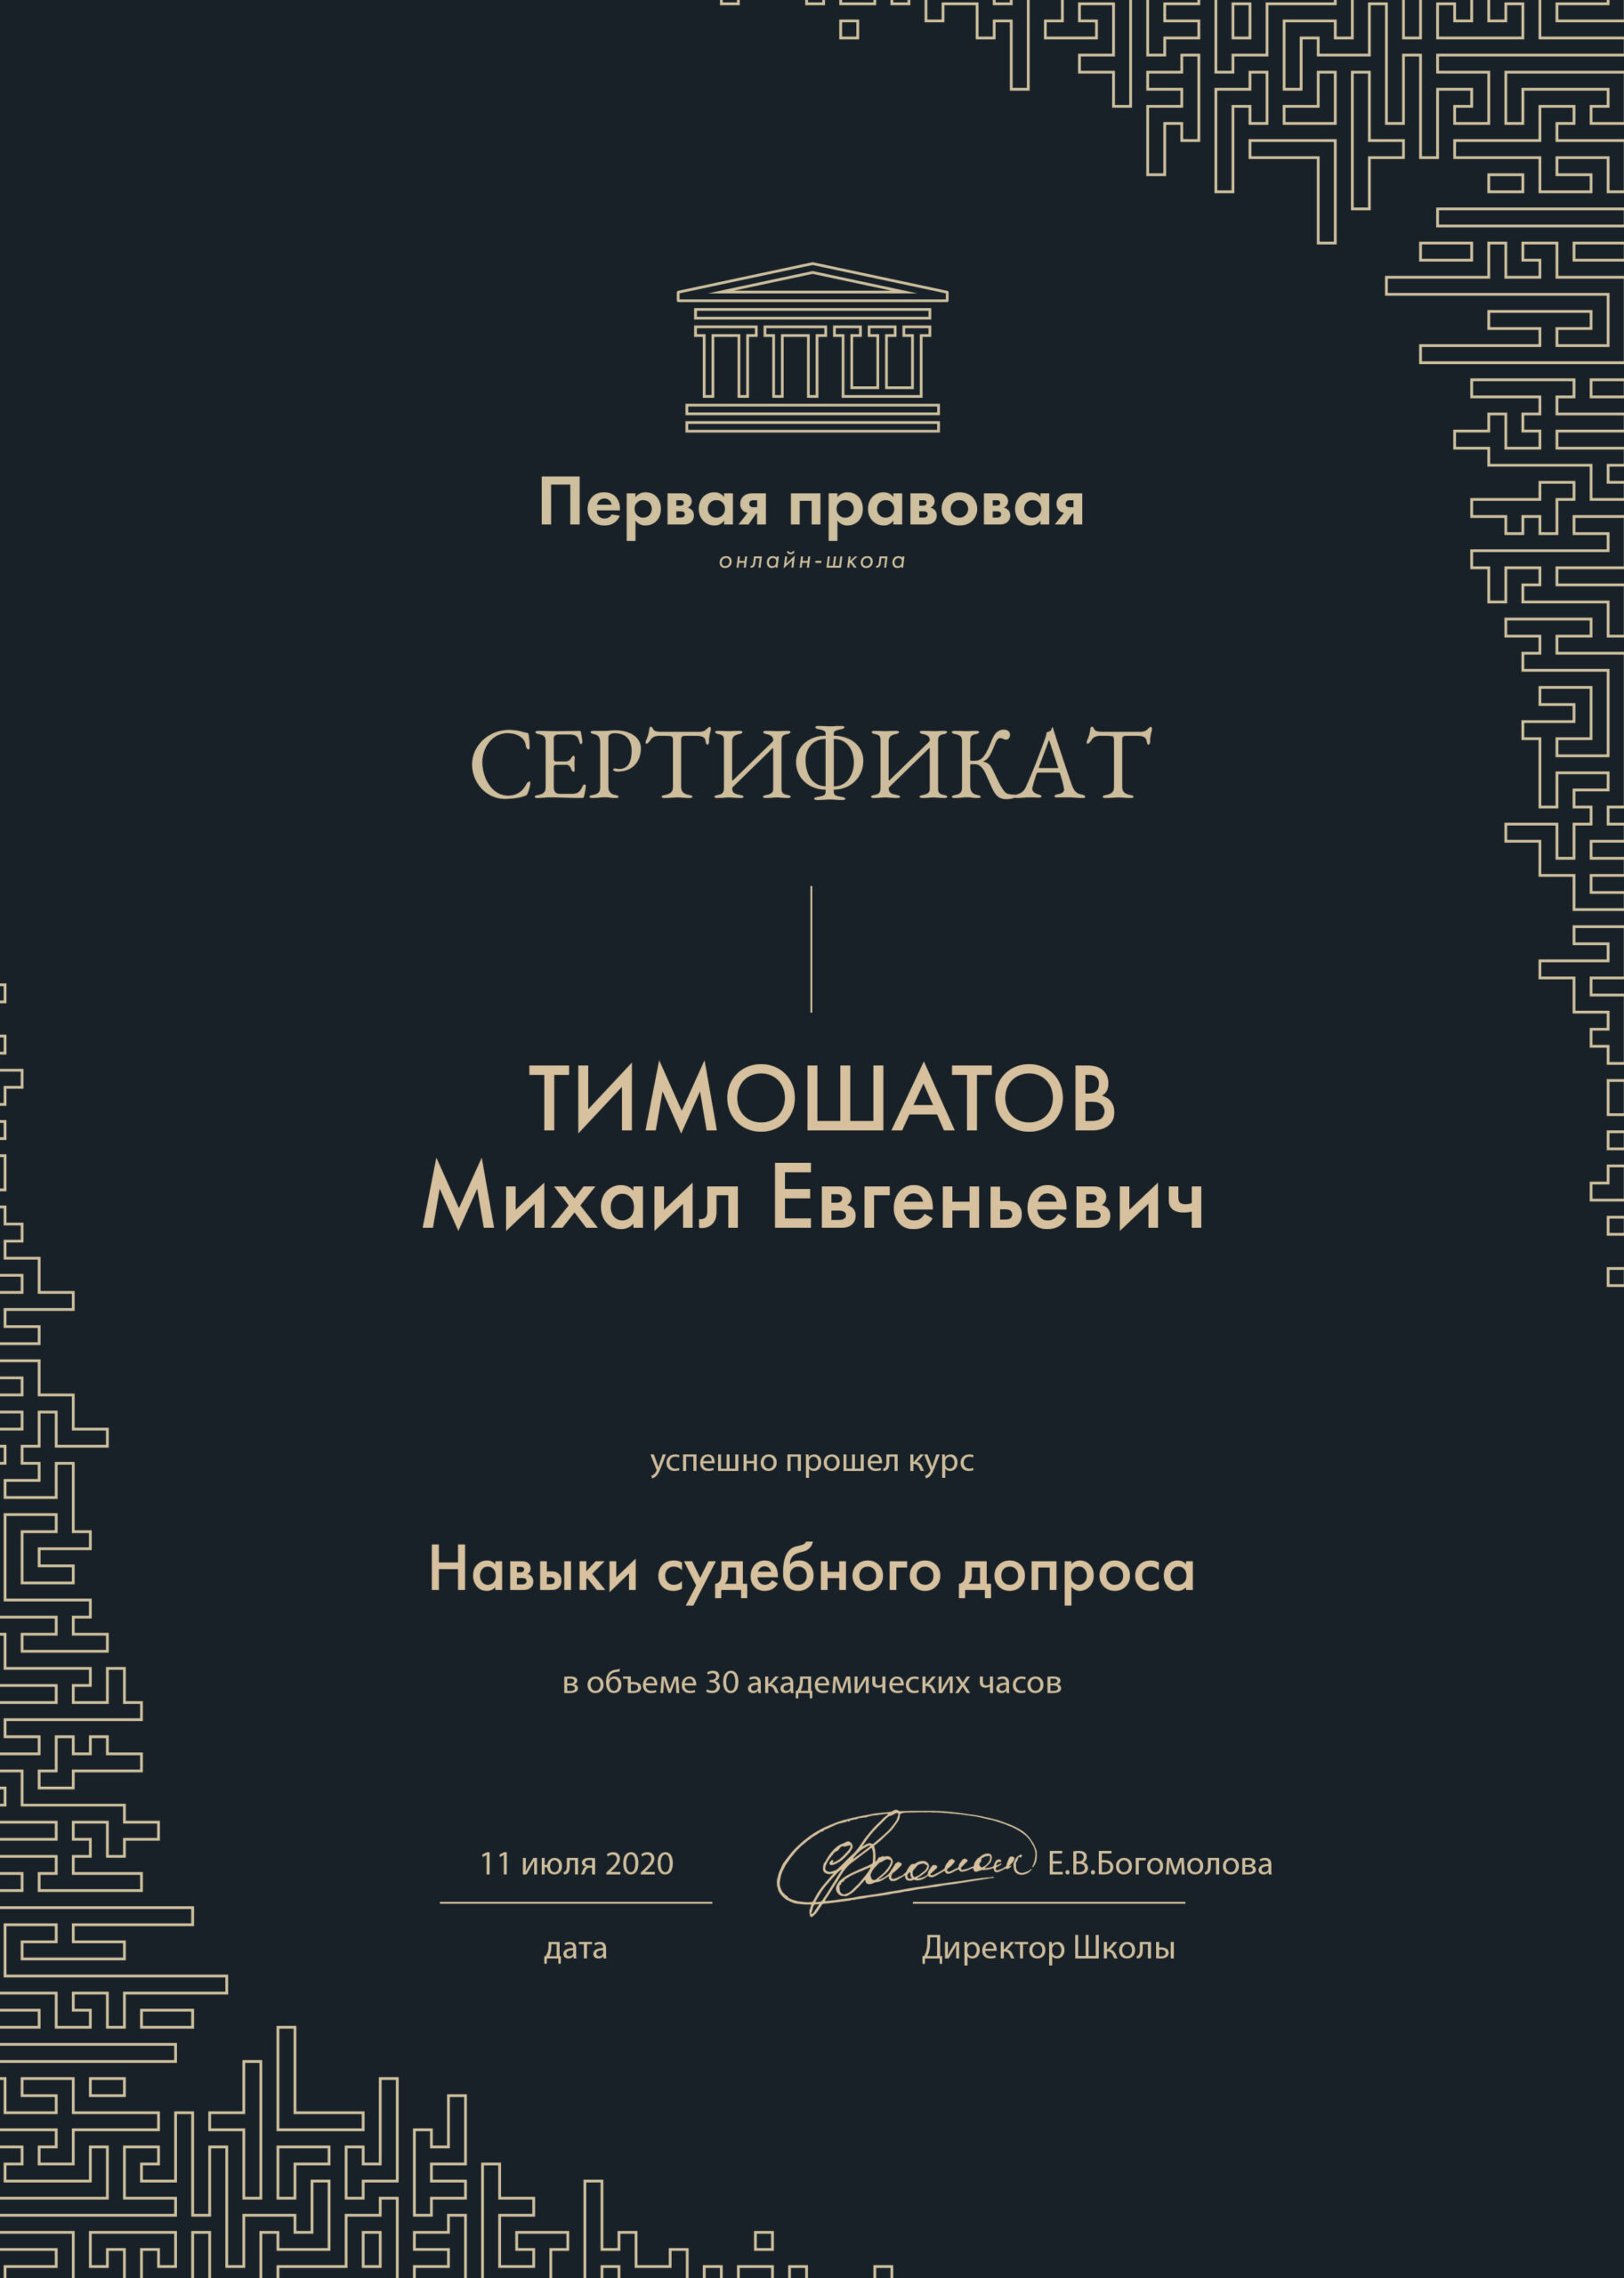 Law_Certificate result